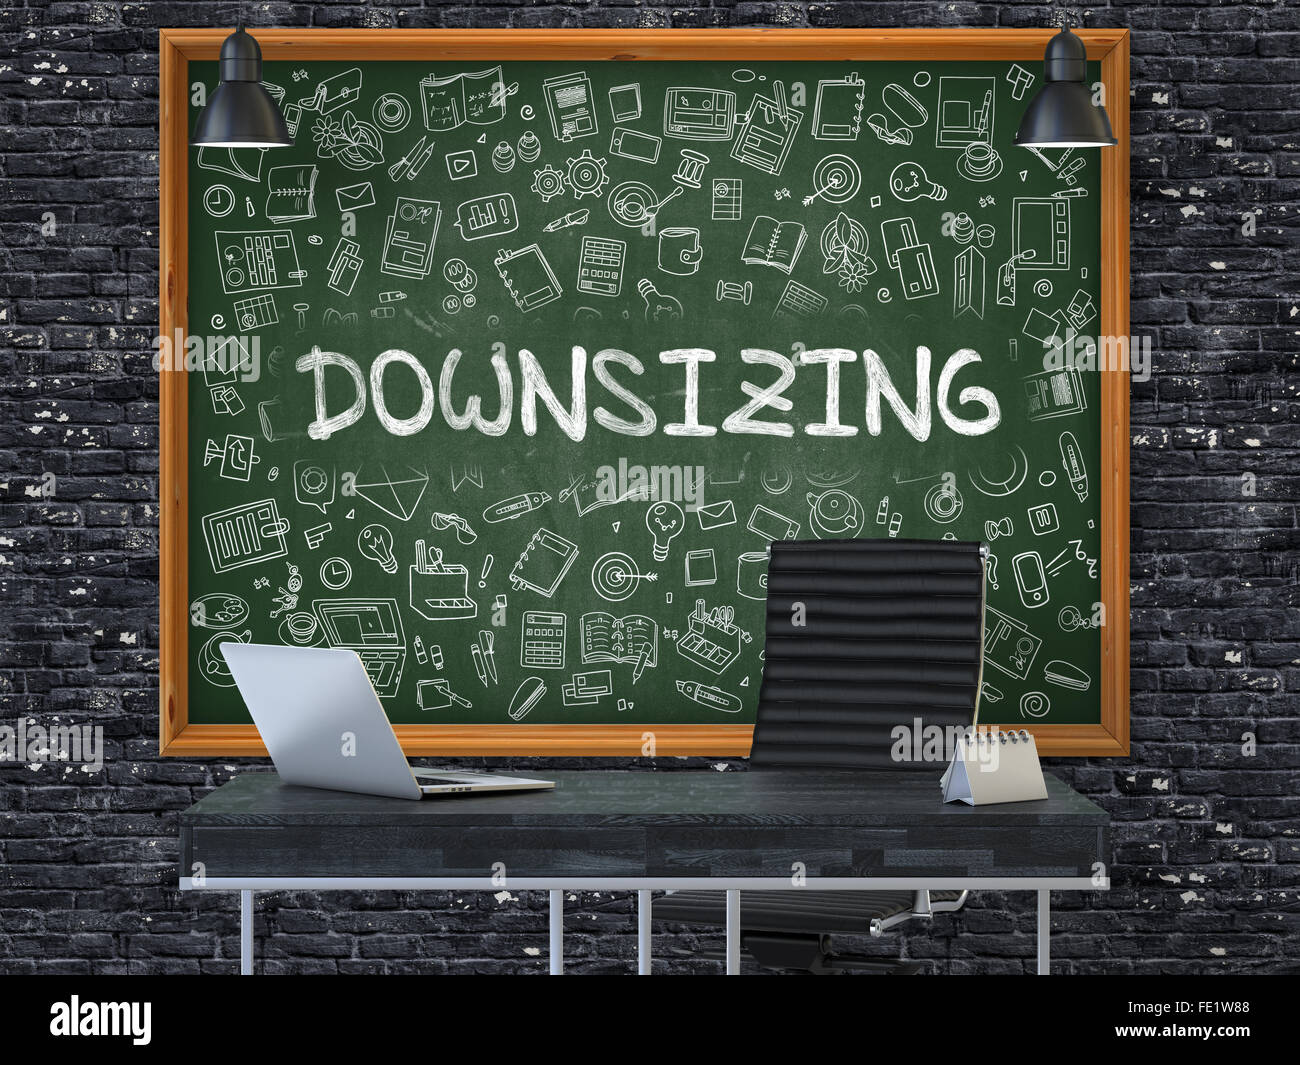 Downsizing on Chalkboard in the Office. - Stock Image